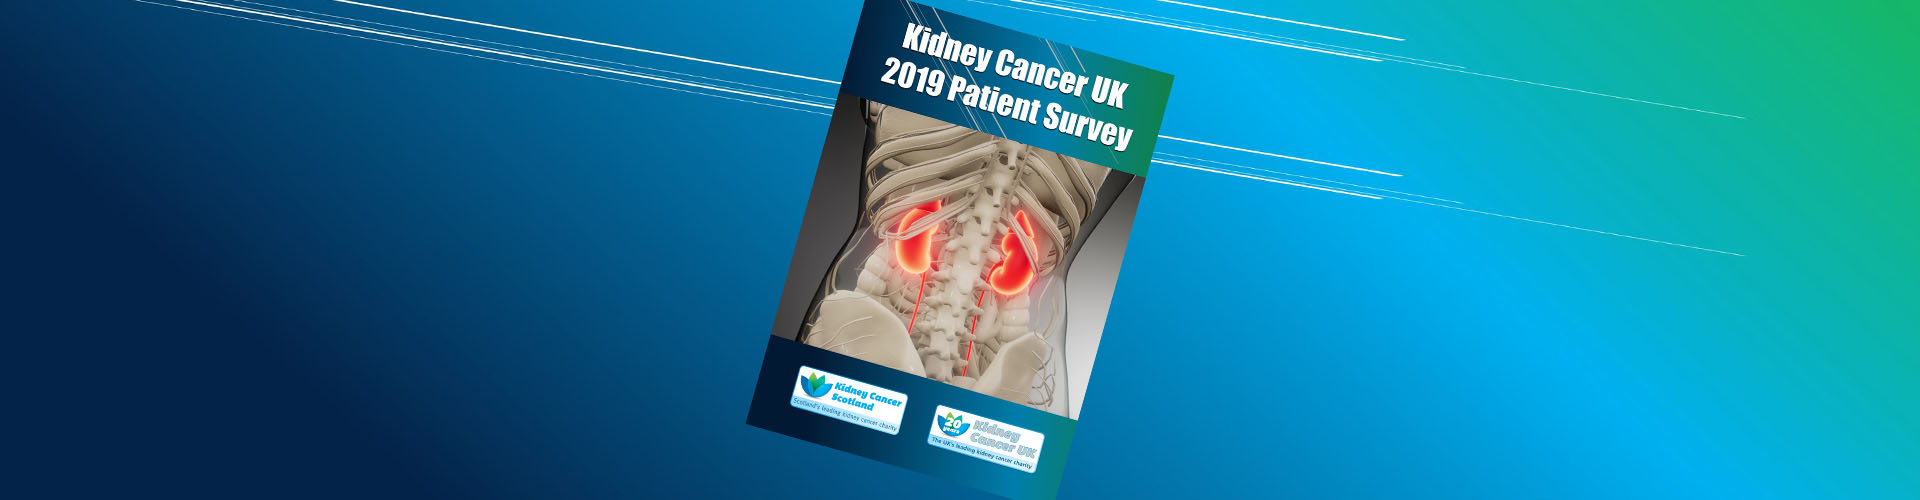 Kidney Cancer UK 2019 Patient Survey